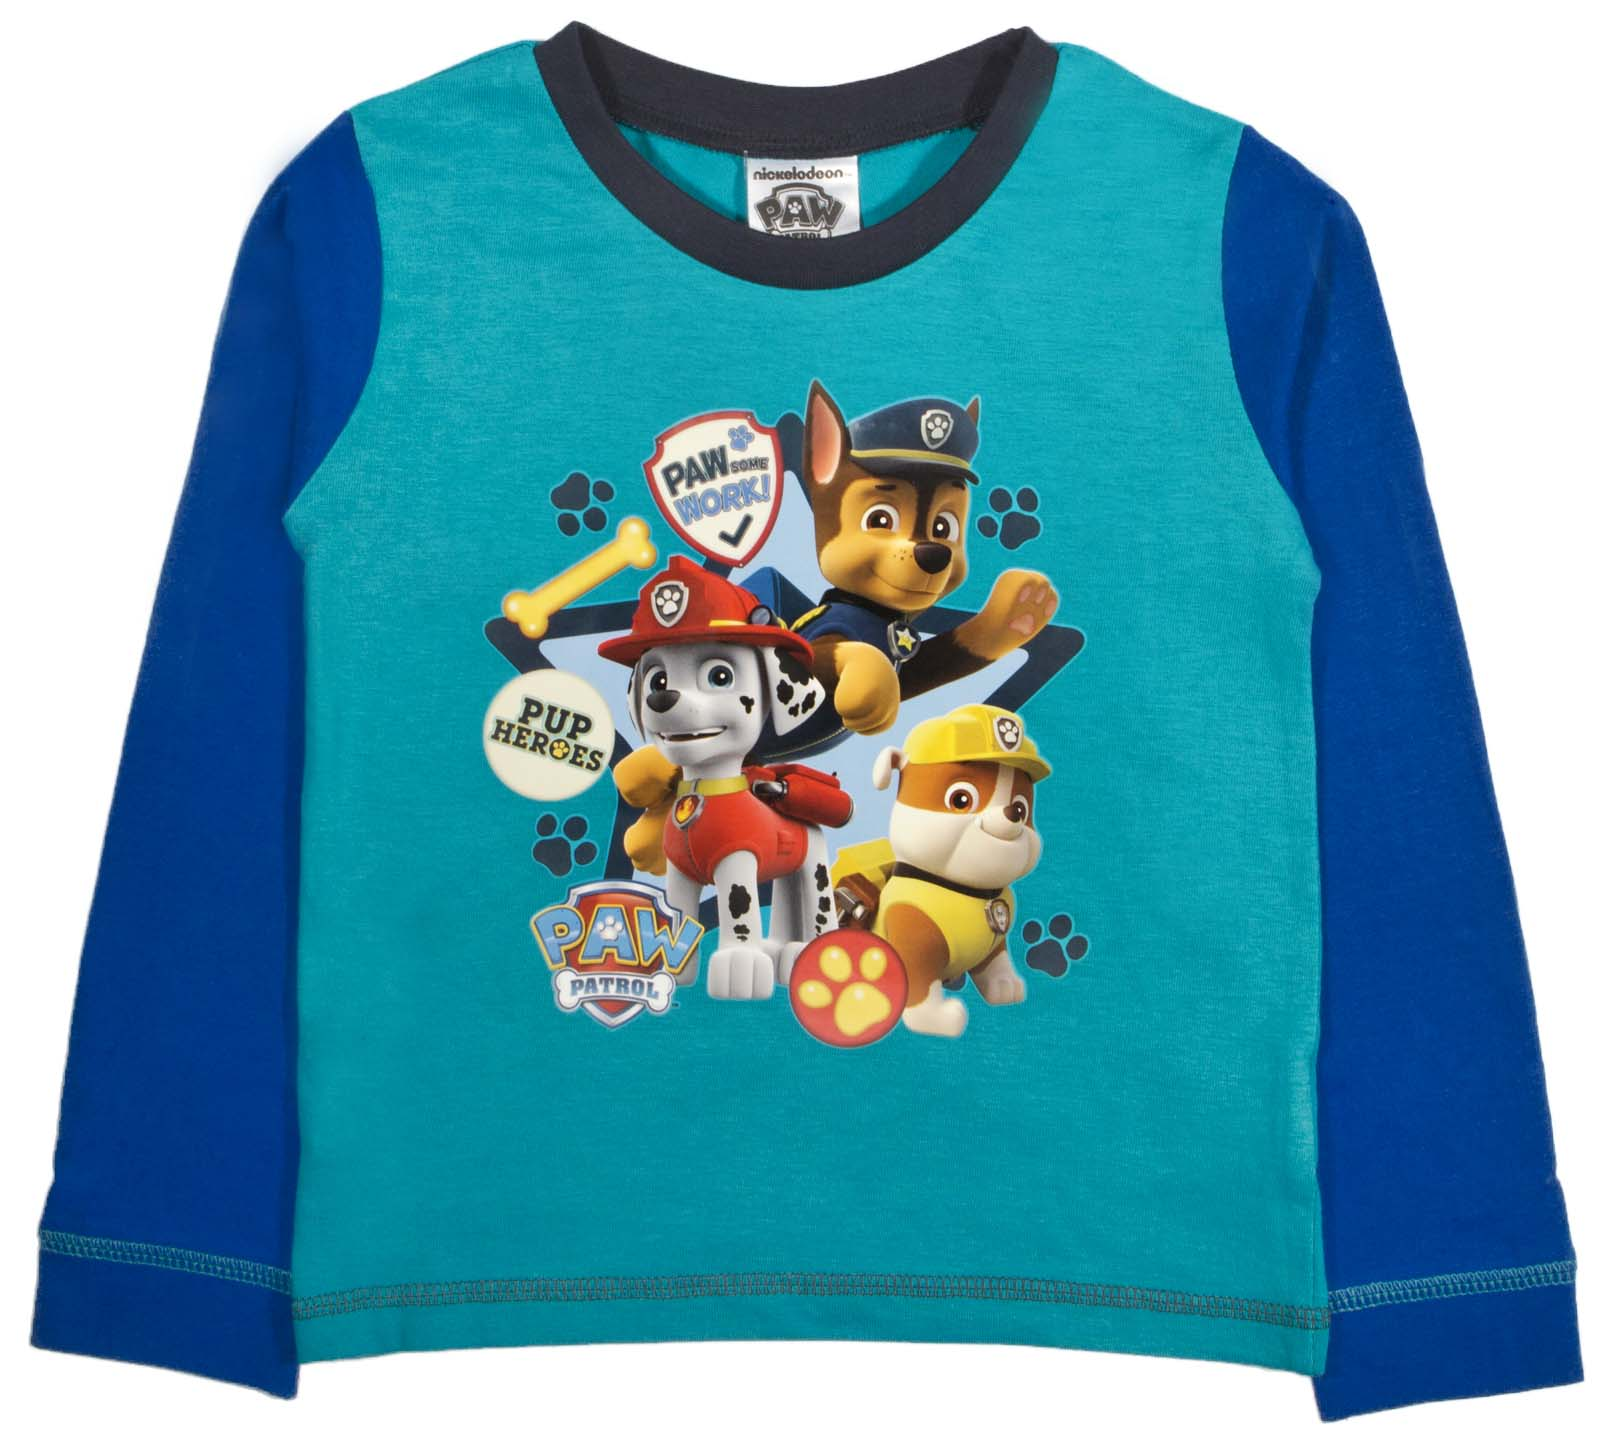 Nickelodeon Paw Patrol Pyjamas Boys Girls 2 Piece Full Length Pjs Set Kids Size